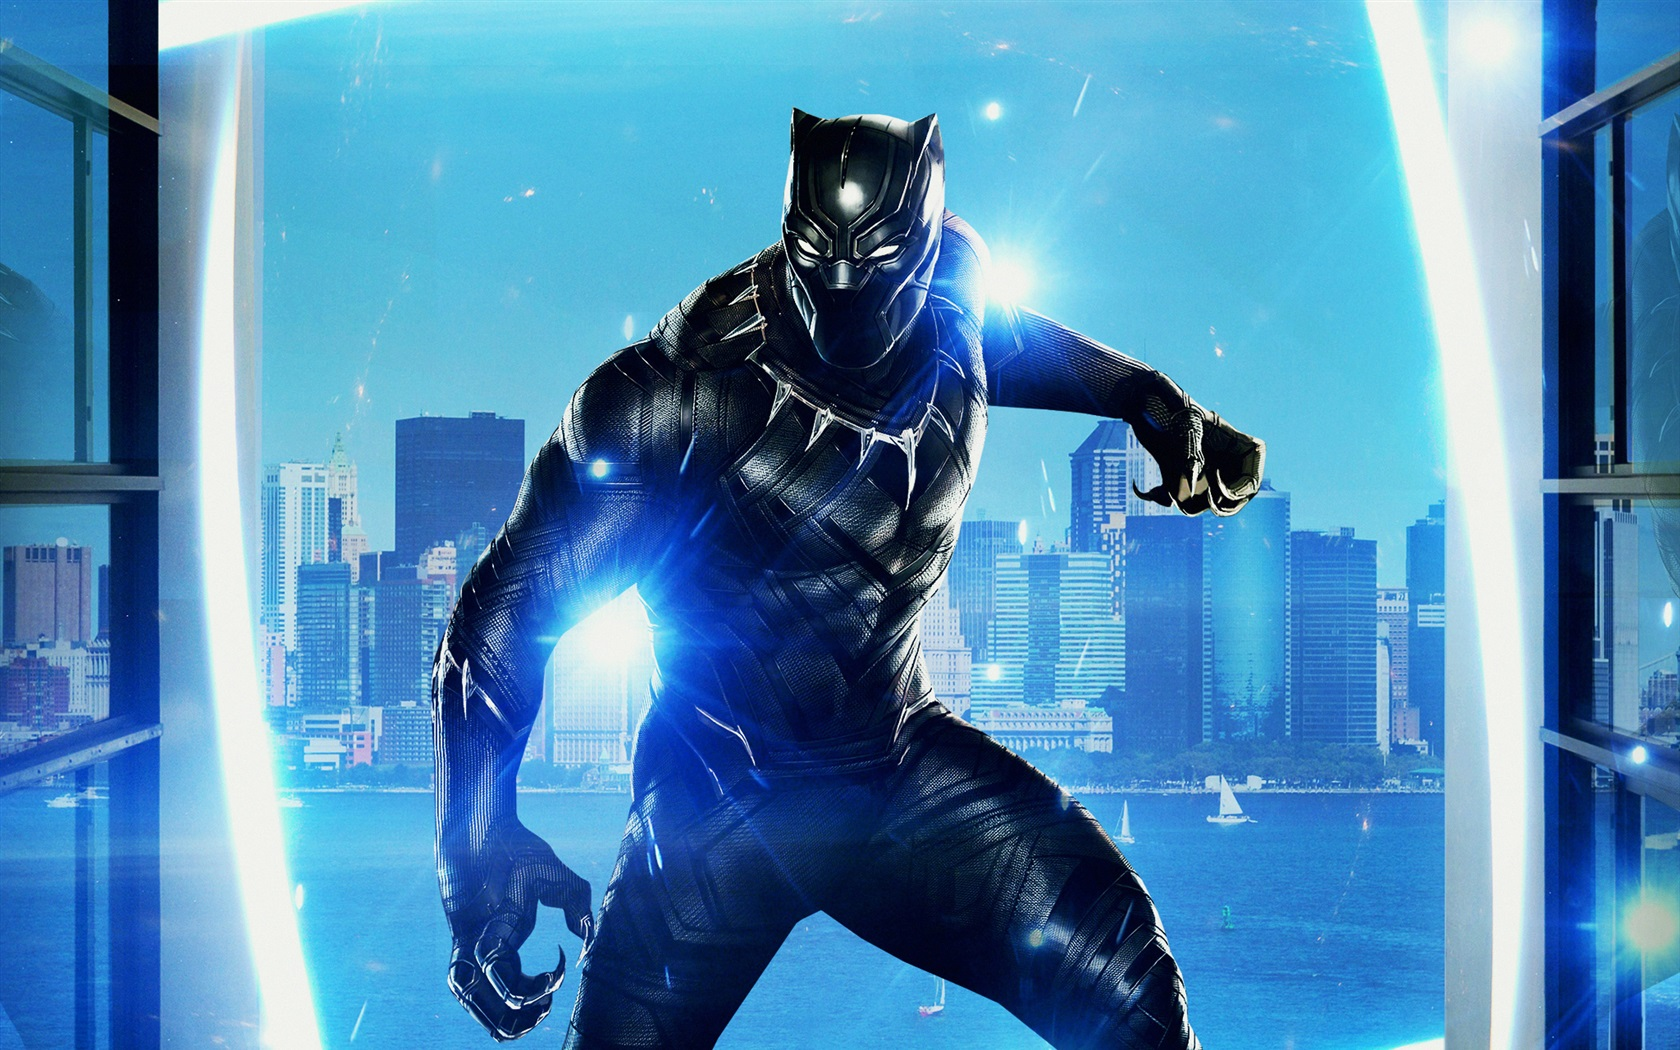 Black Panther 2018 Movie Still Full Hd Wallpaper: Wallpaper 2018 Movie, Black Panther 1920x1440 HD Picture